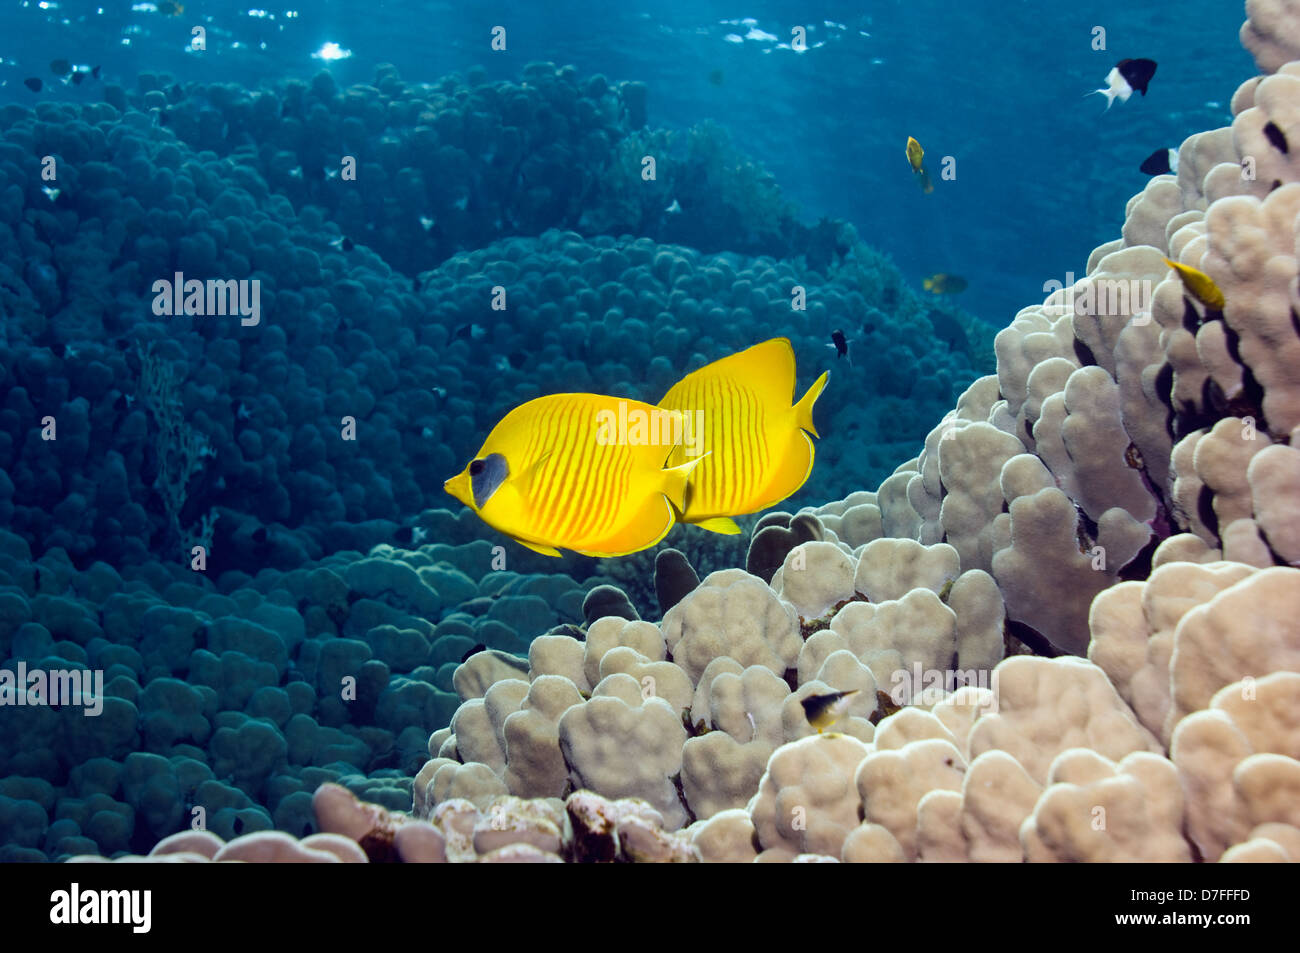 Golden butterflyfish (Chaetodon semilarvatus) swimming over coral reef. Egypt, Red Sea. Red Sea endemic. - Stock Image